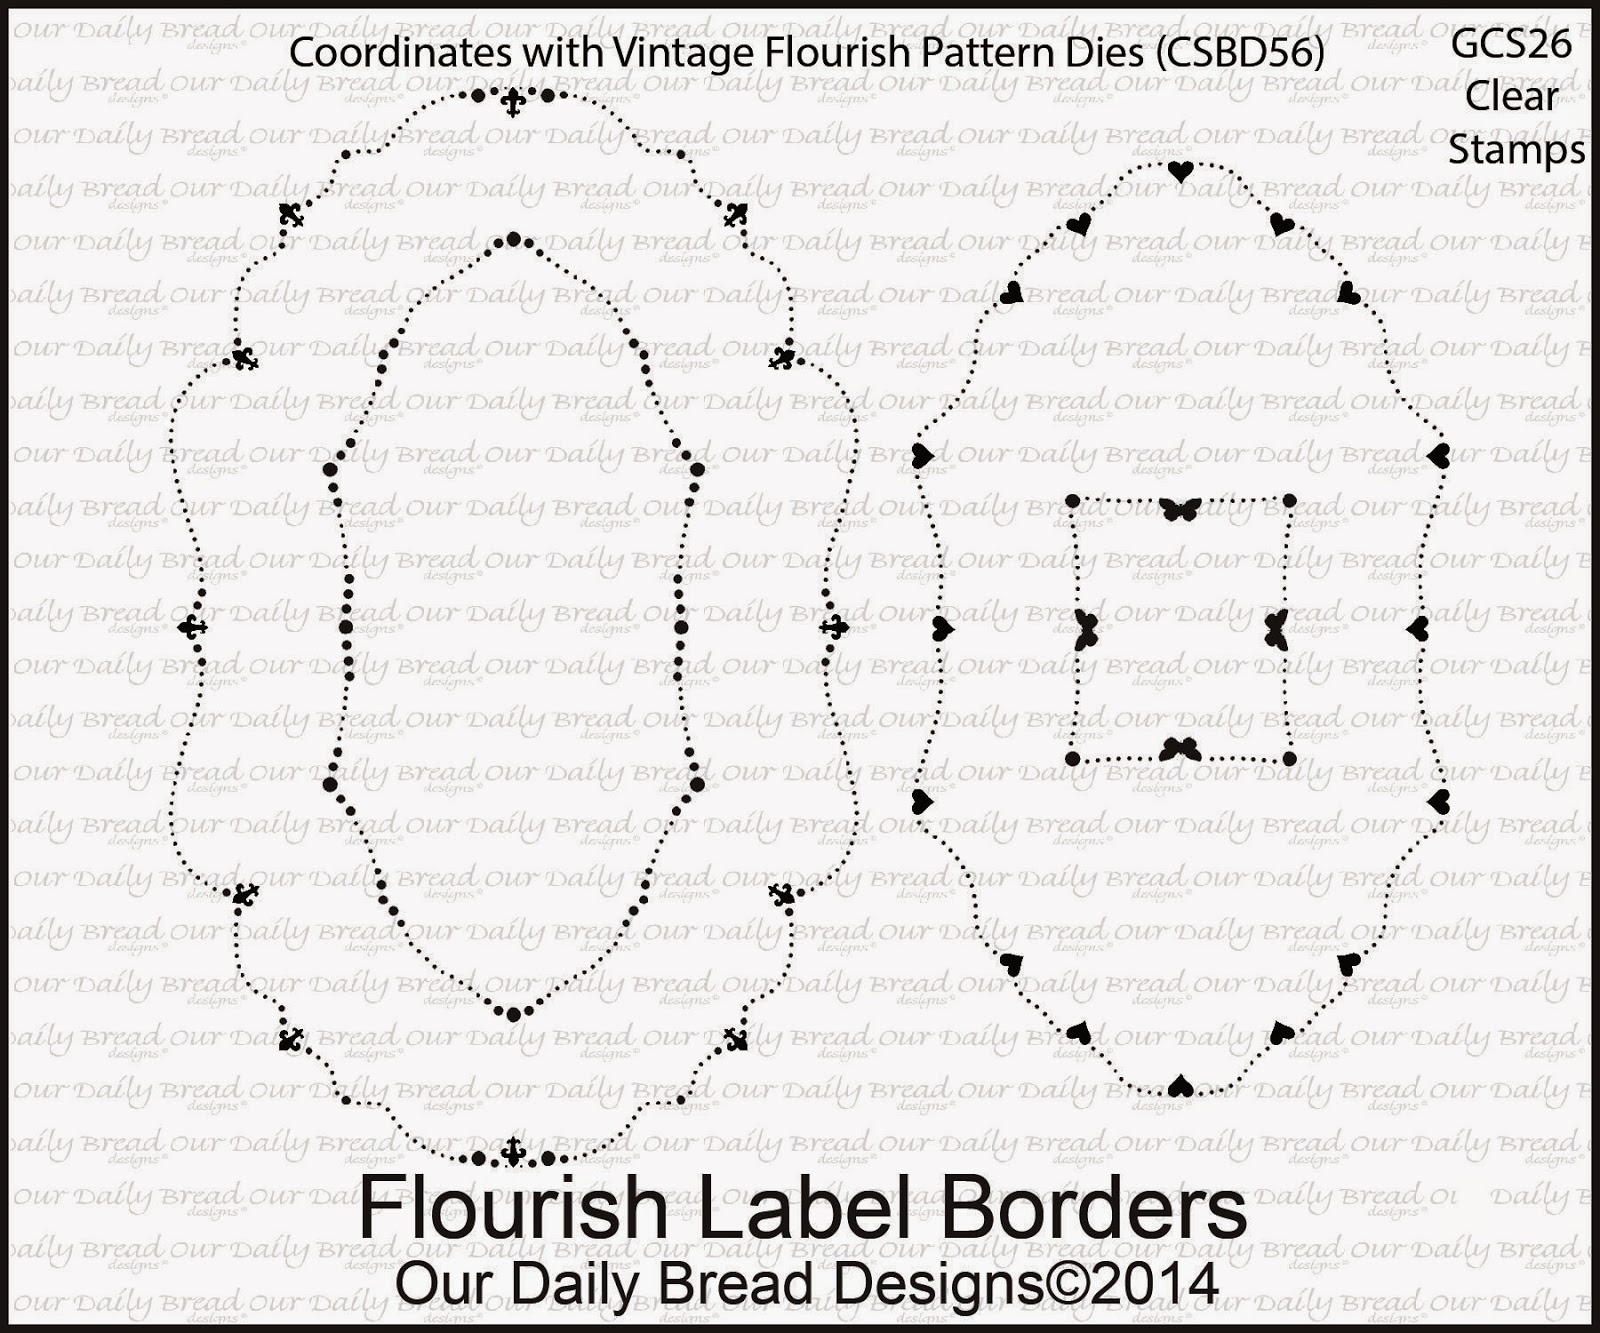 https://www.ourdailybreaddesigns.com/index.php/gcs26-flourish-label-borders-clear-stamps.html